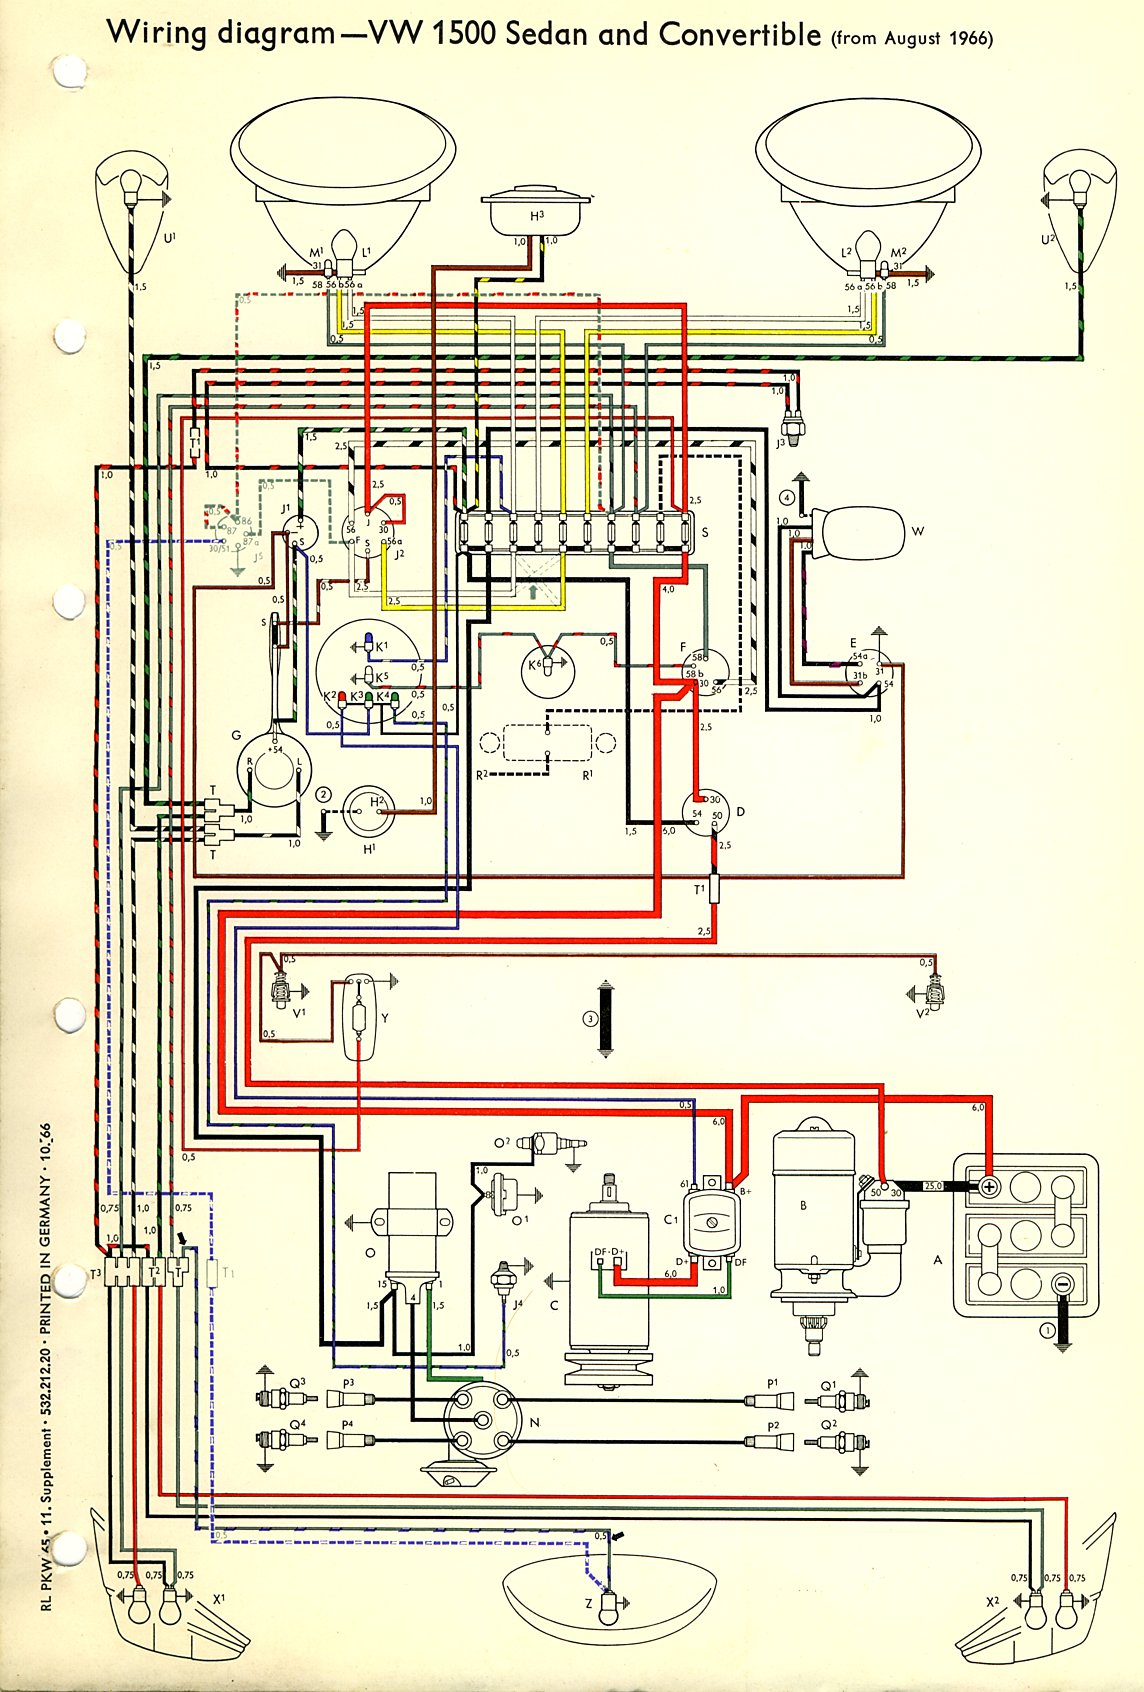 2002 Vw Beetle Headlight Wiring - Enthusiast Wiring Diagrams •